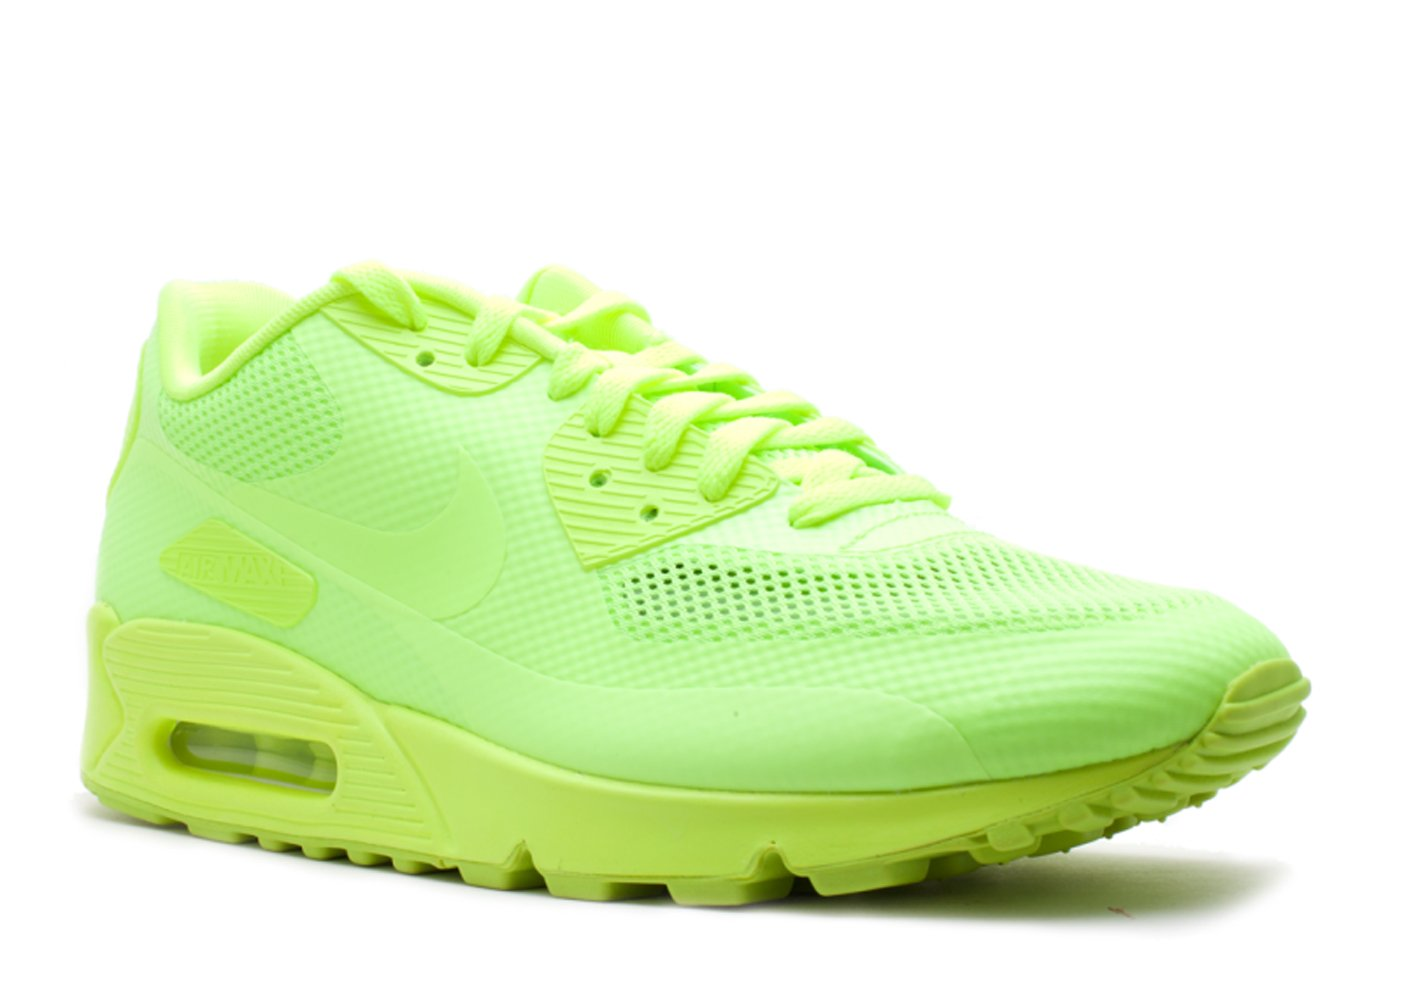 meet b0d50 2a343 ... reduced air max 90 hyp prm hyperfuse volt 454446 700 1273c f5311 norway prf38  nike air max 90 hyperfuse premium running shoes ...